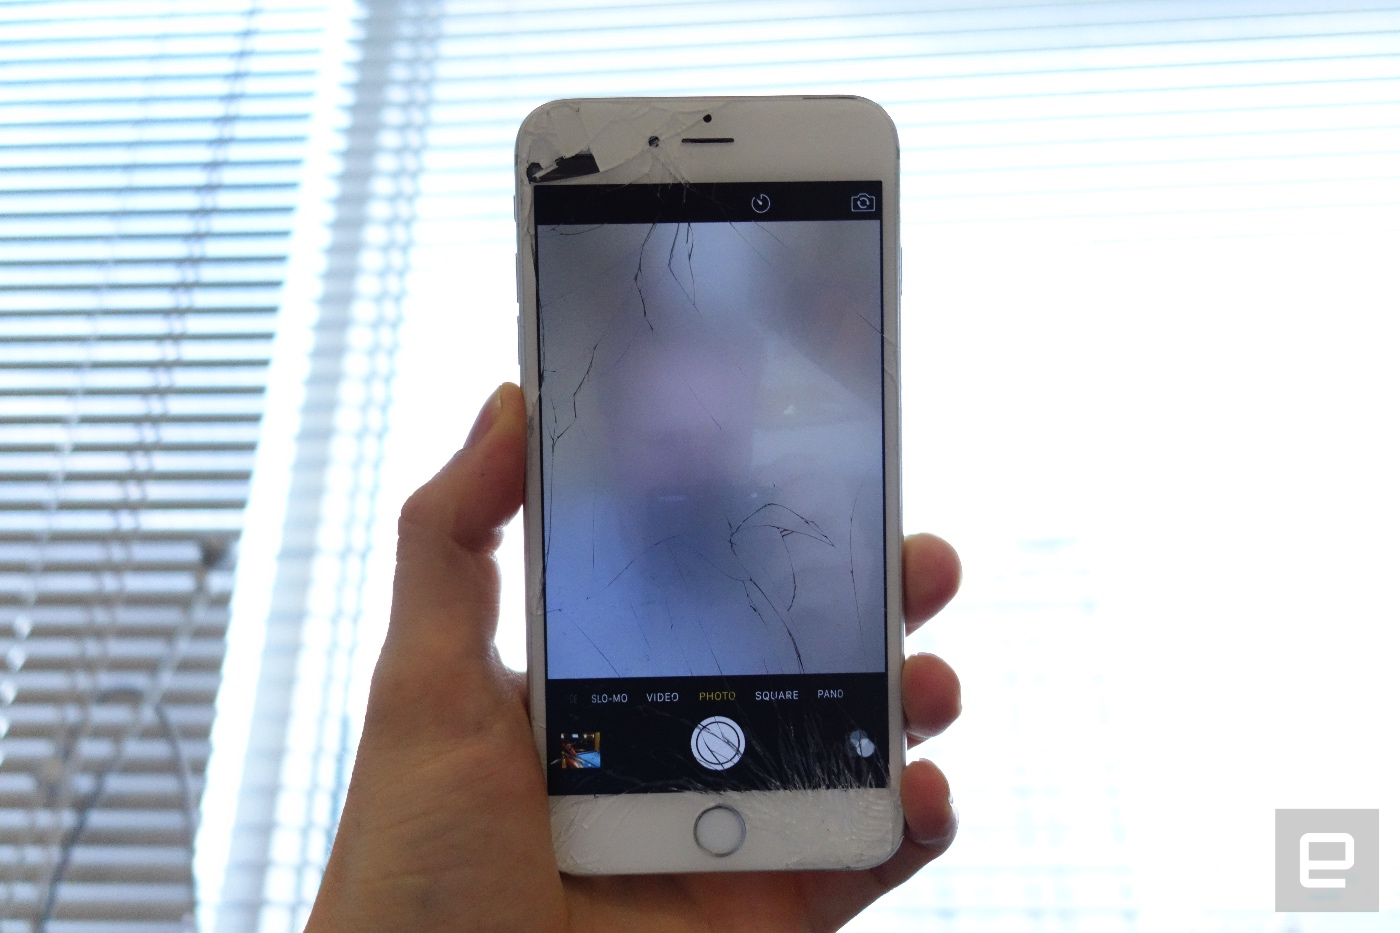 Tips To Protect Your iPhone Screen From Cracking